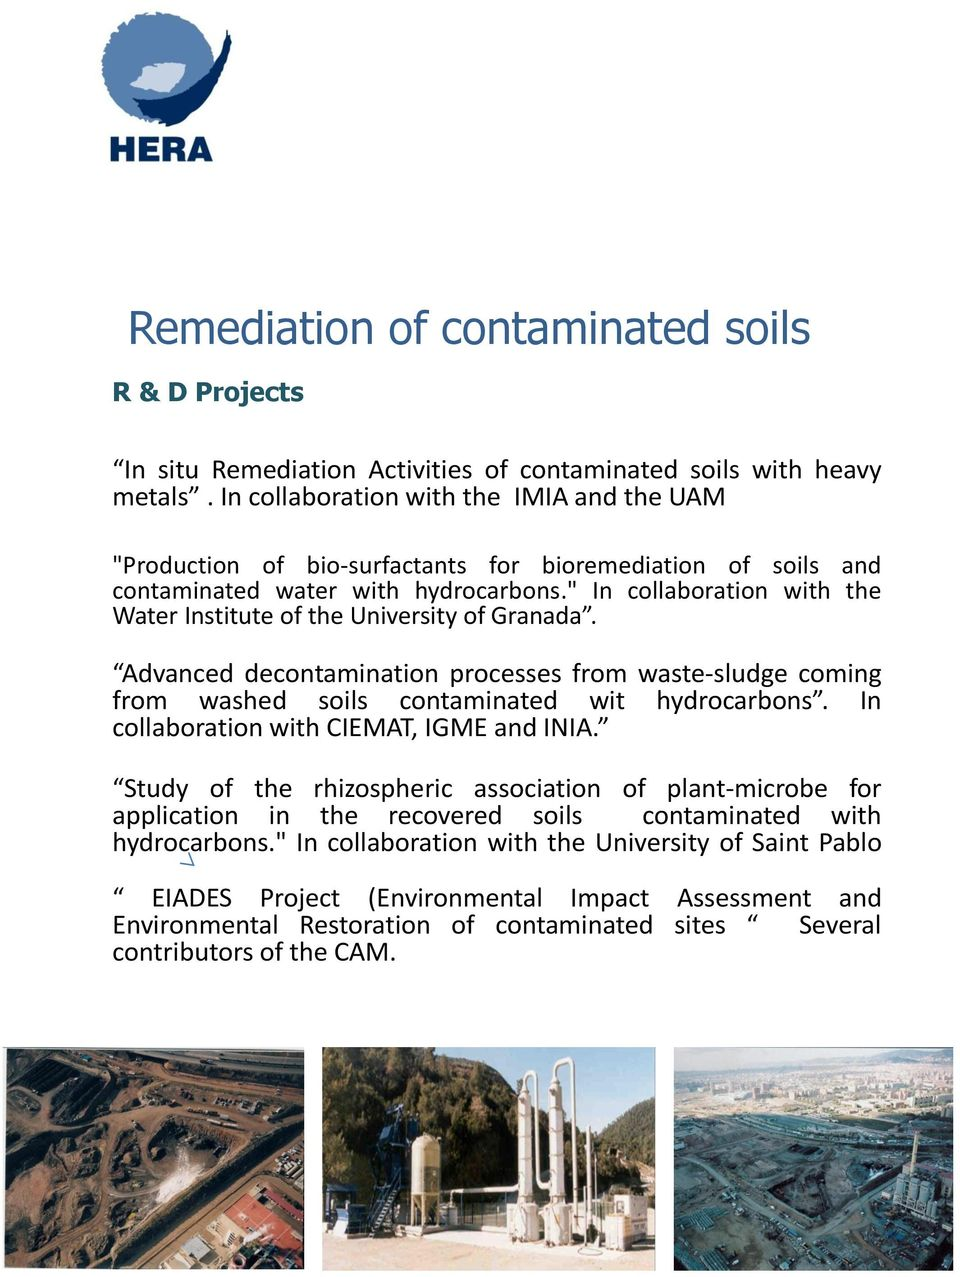 """ In collaboration with the Water Institute of the University of Granada. Advanced decontamination processes from waste-sludge coming from washed soils contaminated wit hydrocarbons."